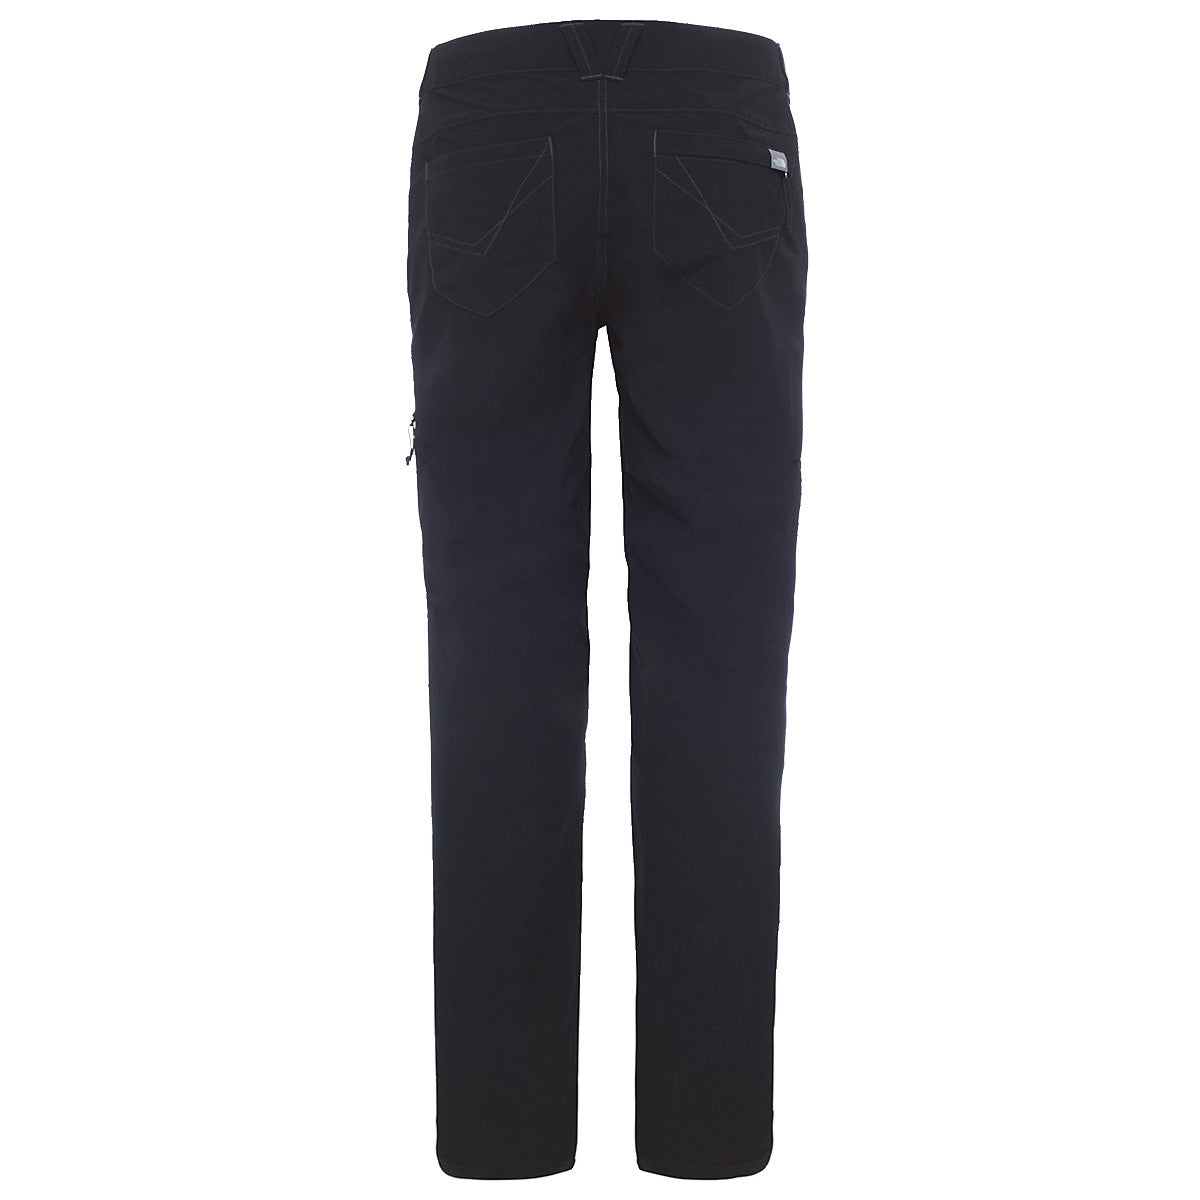 a2b452a0 The North Face Womens Exploration Pant - Outdoor Sports